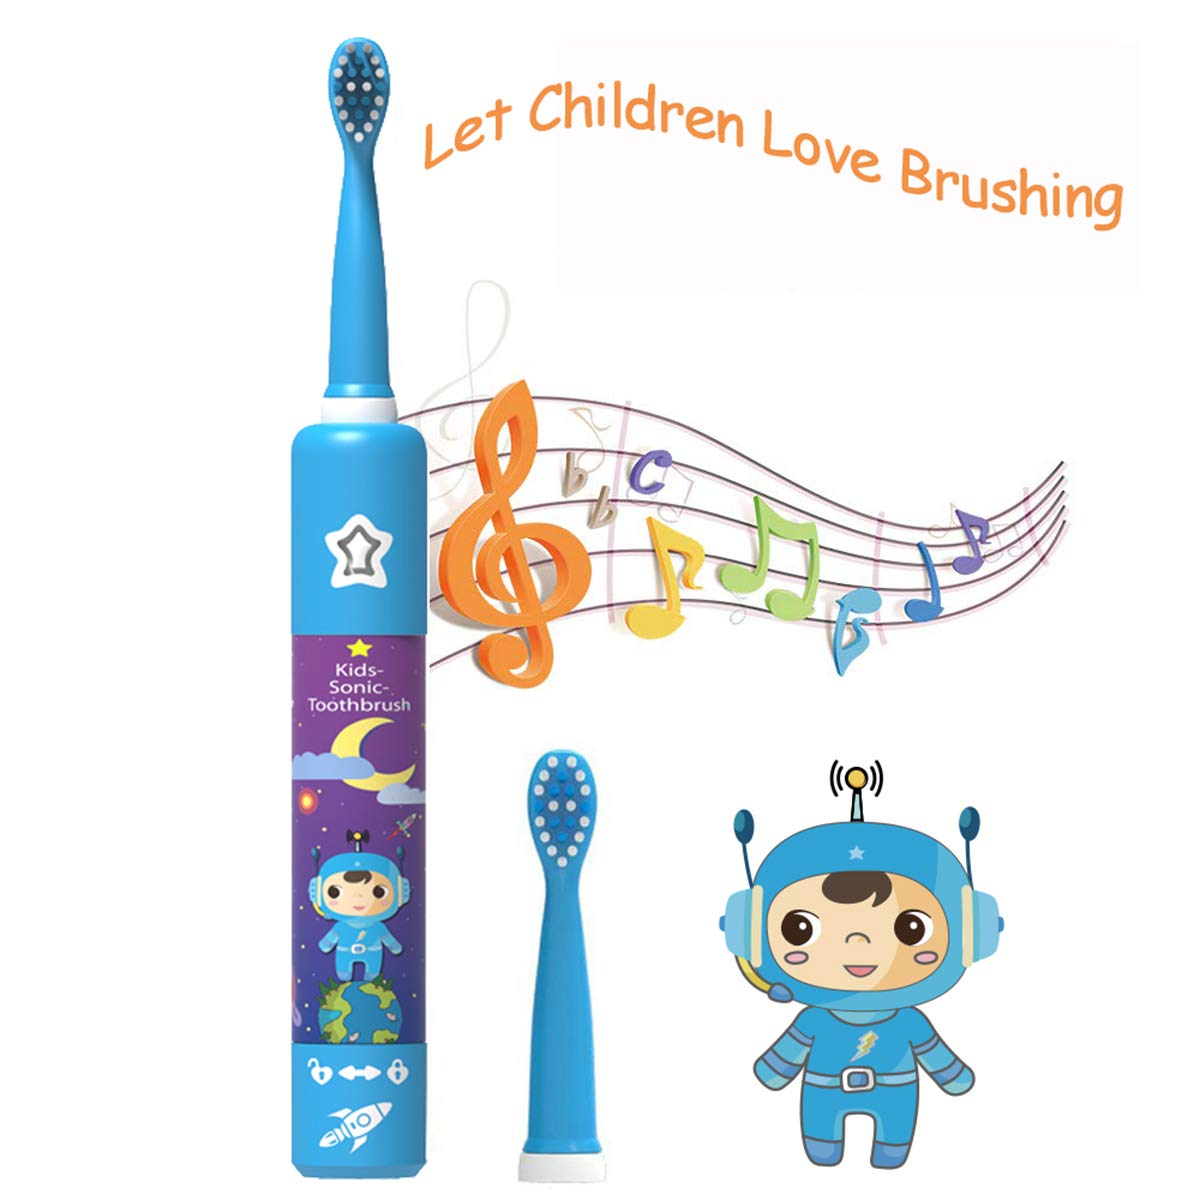 Kids Electric Toothbrush Rechargeable USB Charging Powered Up to 30 Days, Smart Timer 3 Modes Waterproof Travel Sonic Toothbrushes 2 Brush Heads Soft Bristles Deep Clean As Dentist for Child Age 3